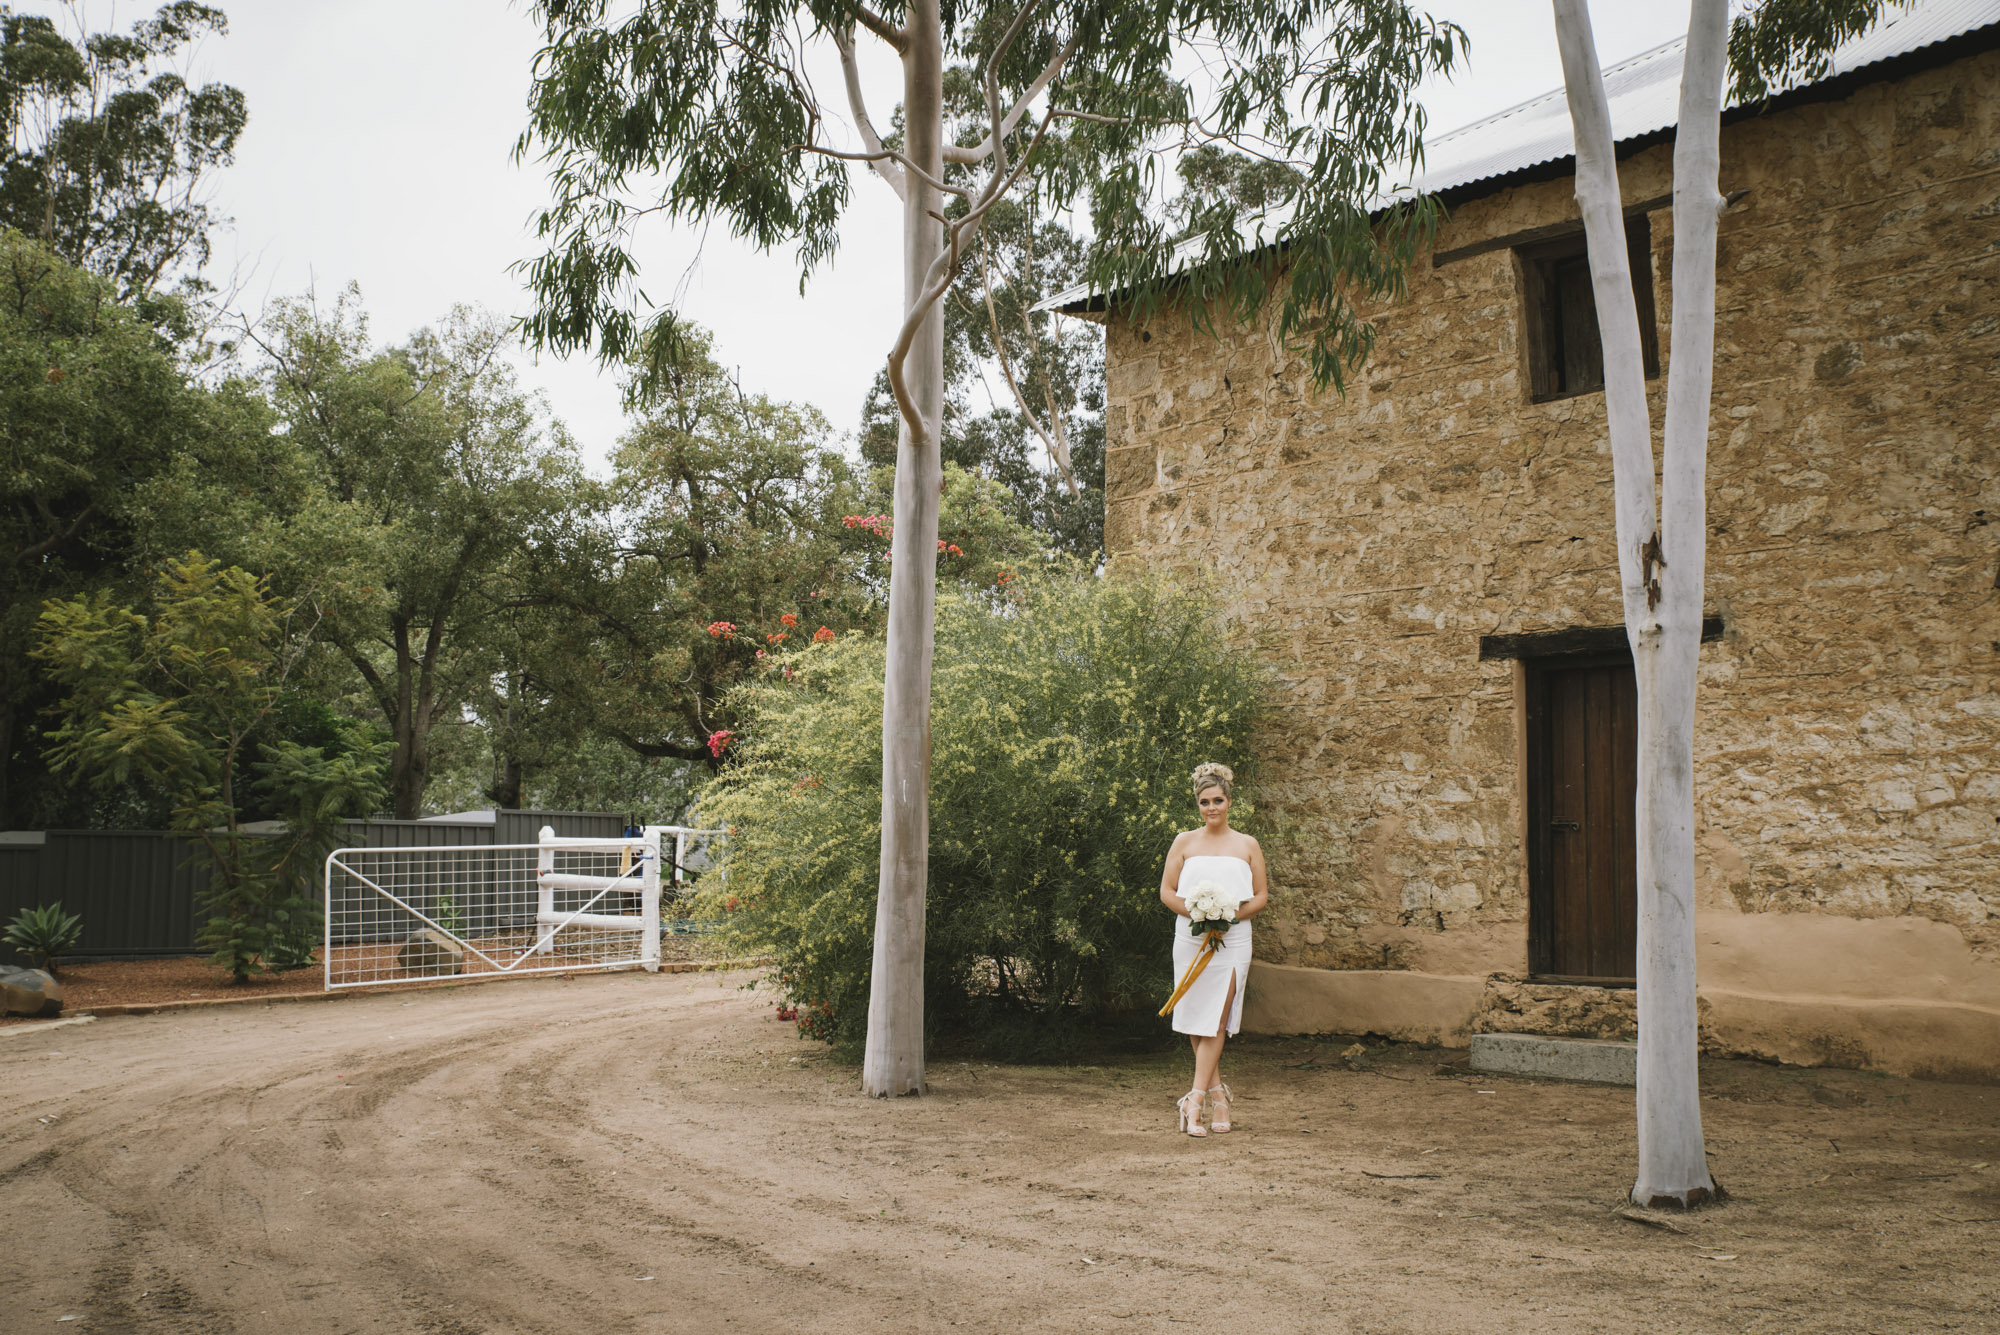 Wheatbelt-Collective-Country-Rural-Farm-Classic-Charm-Wedding-Buckland (25).jpg